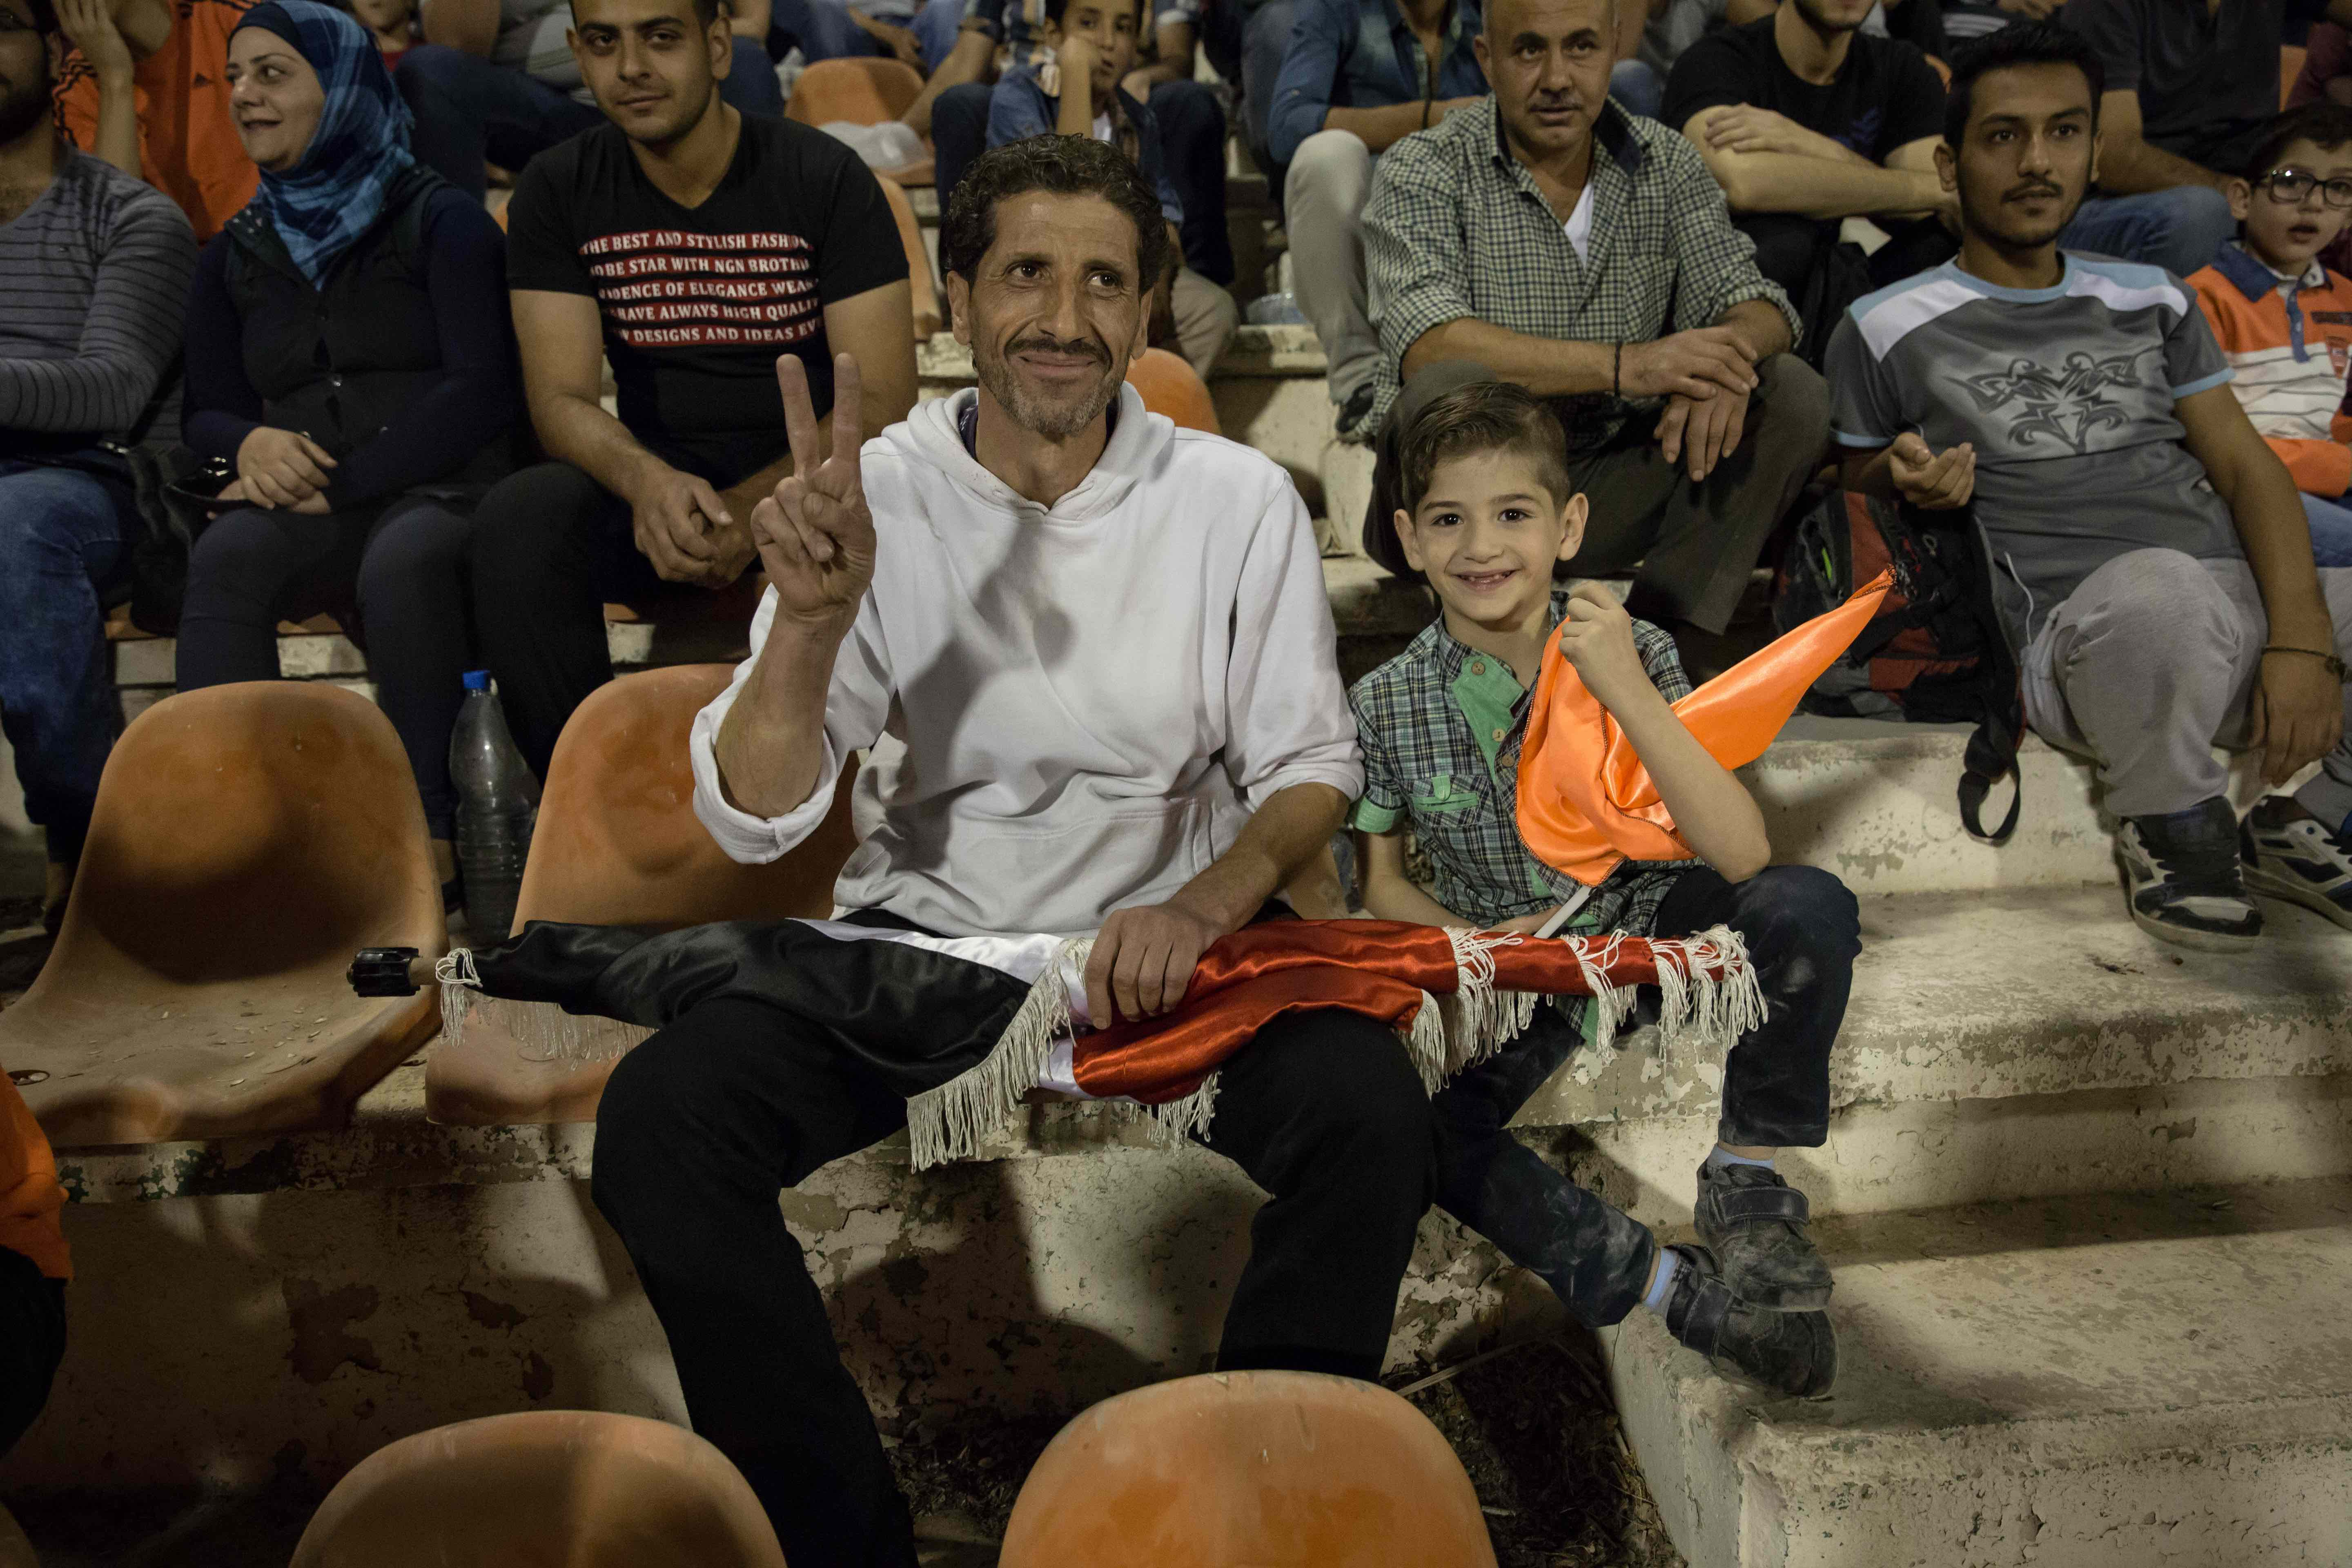 A father and son watch the match from the stands. Many parents said they are still too afraid to bring their children to games.